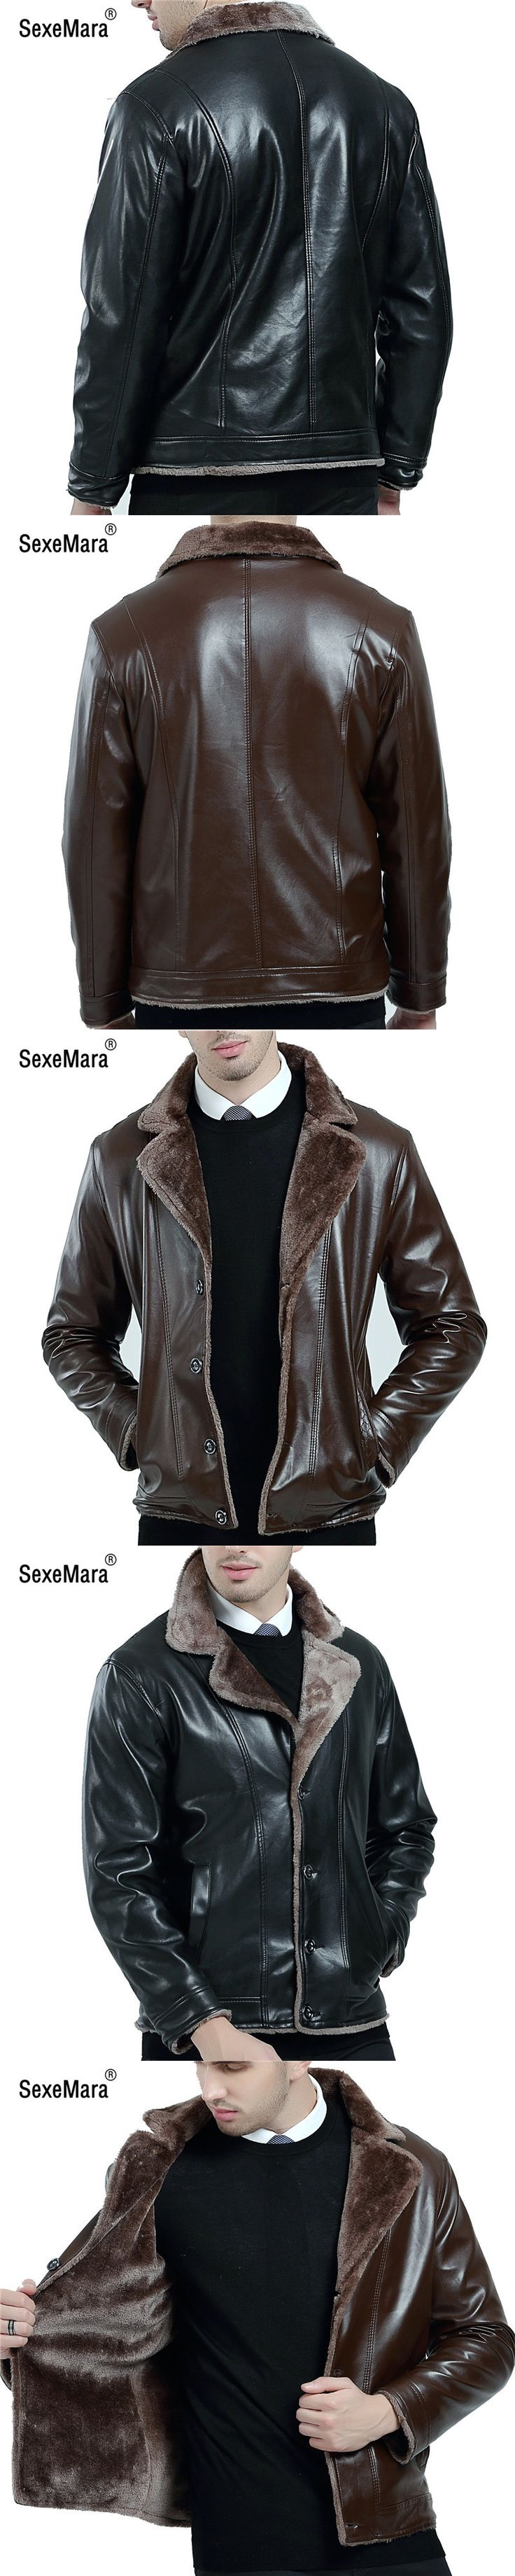 SexeMara Faux Leather Jacket Men 2017 Autumn Winter Casual Thick Warm Coat Men's Motorcycle Outwear PU Jackets Plus Size Homme